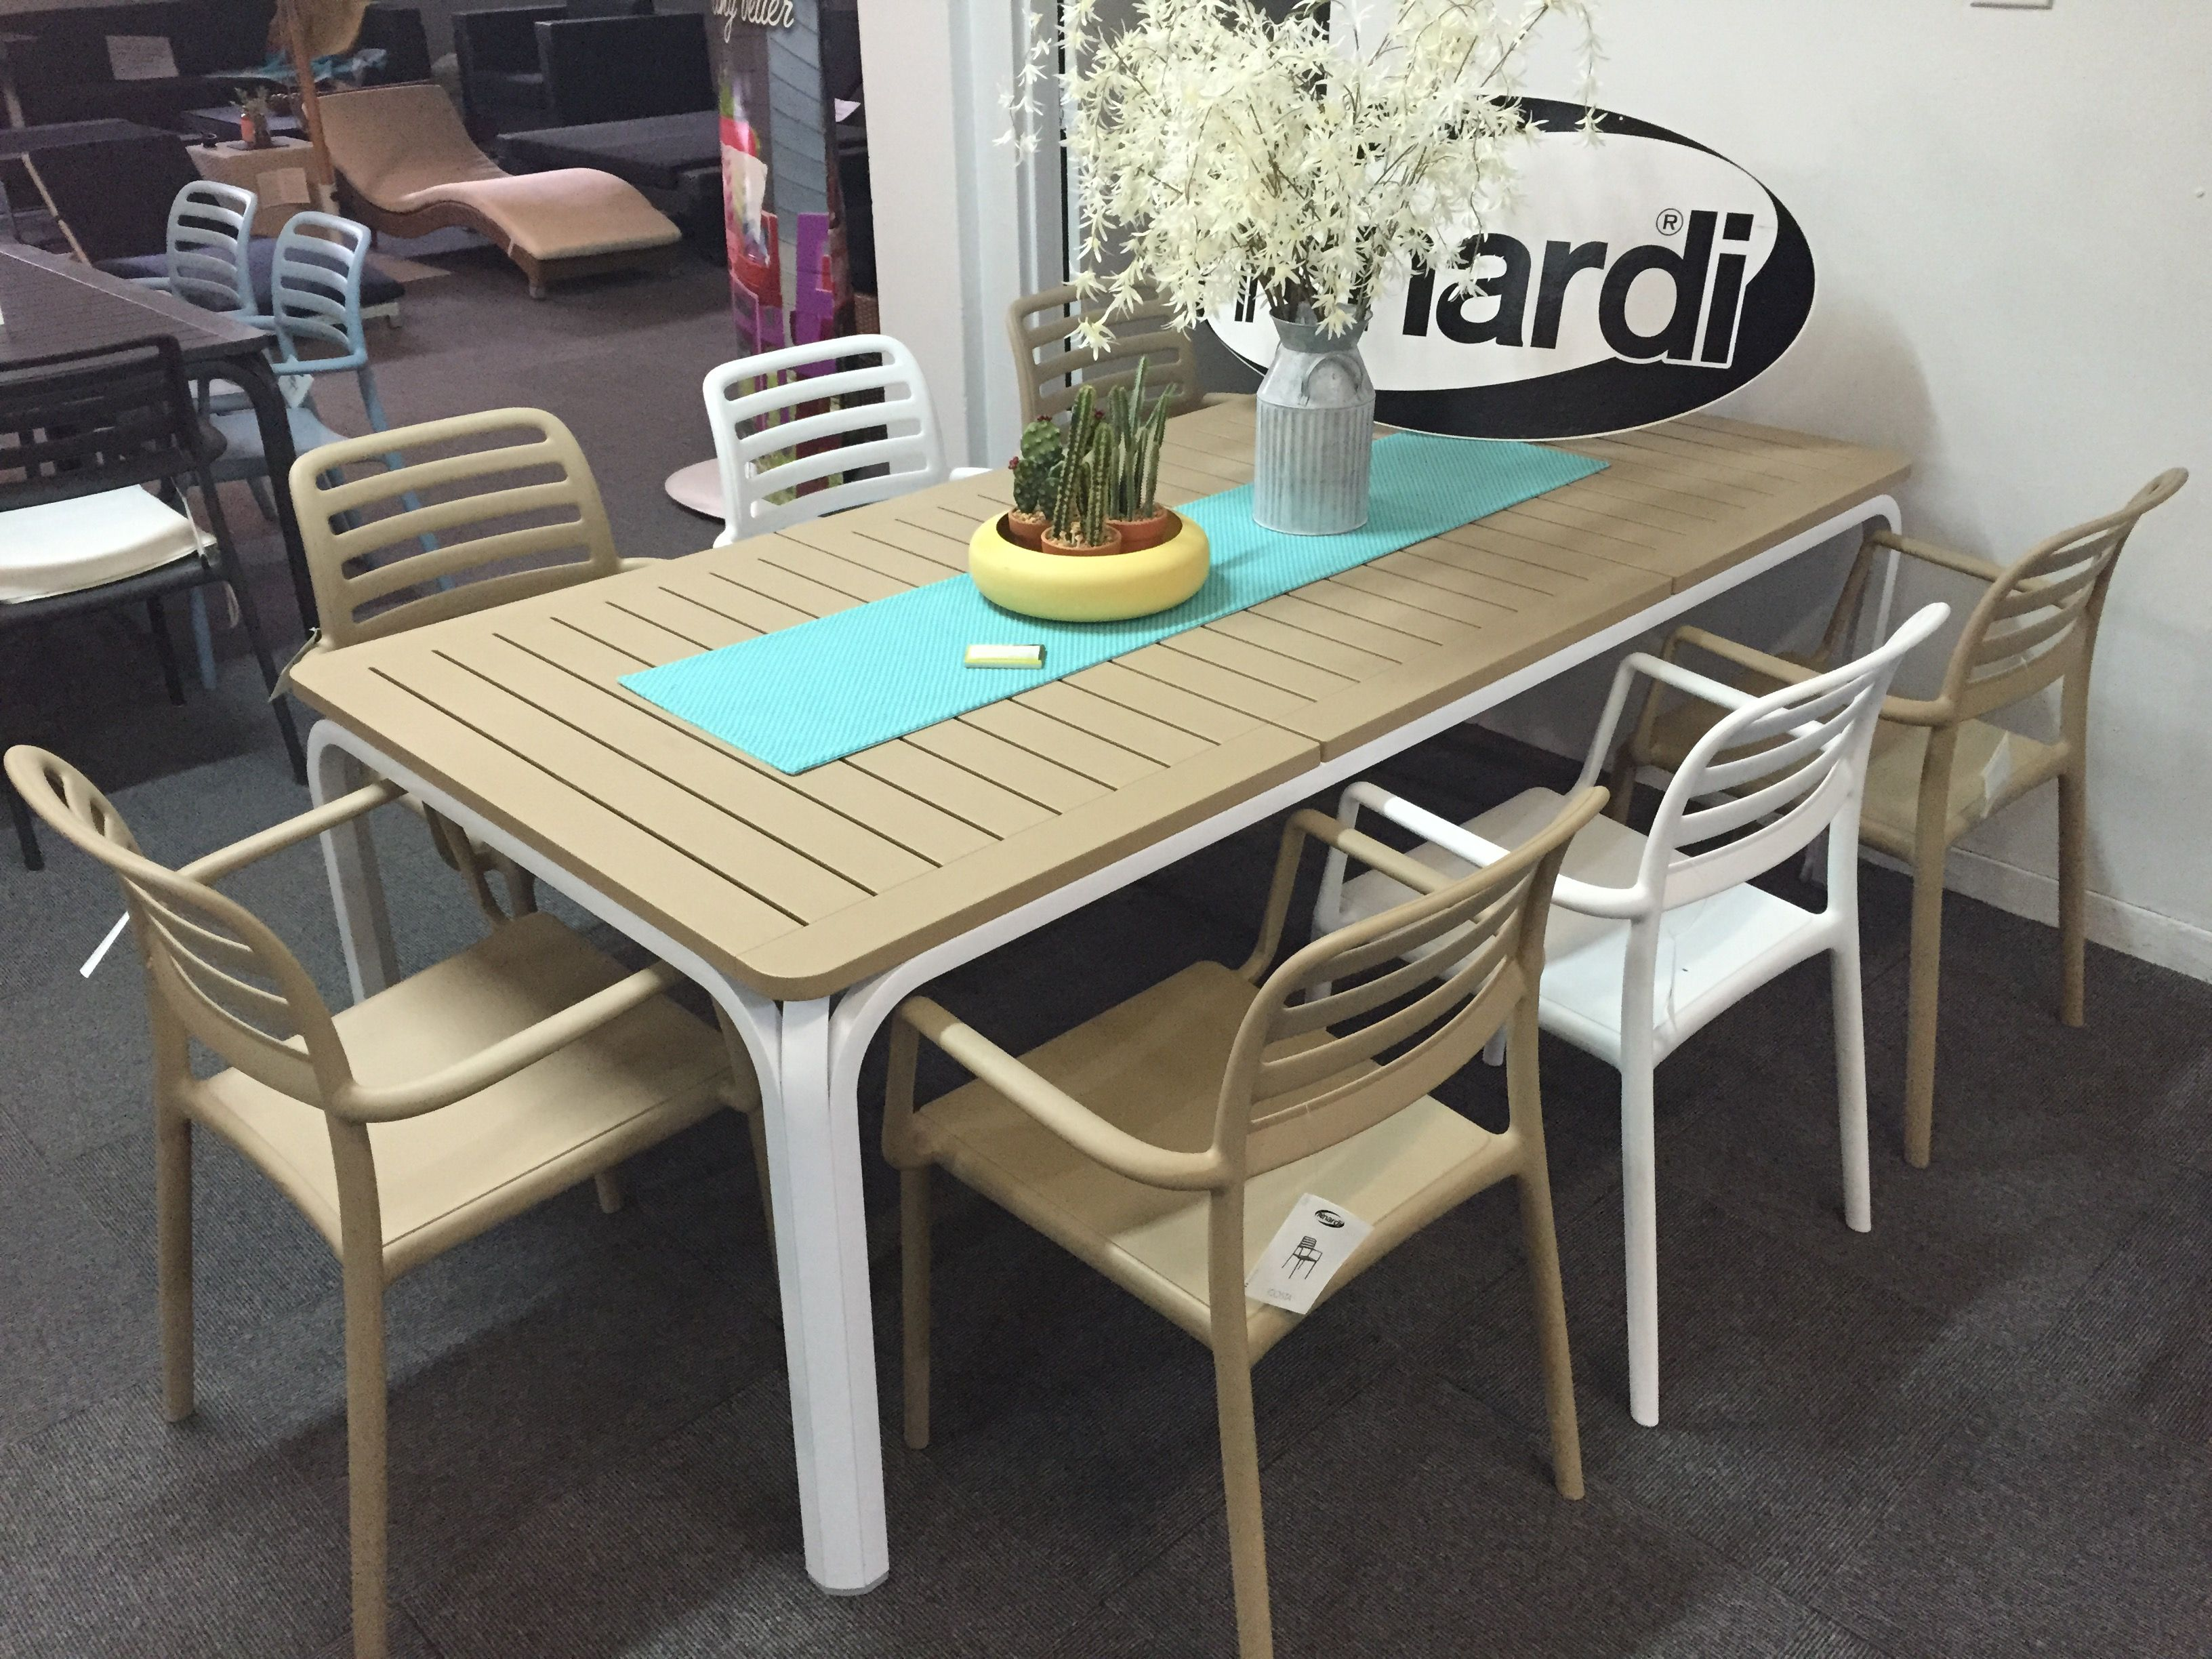 Nardi Alloro 210 Table In White Avana With Costa Arm Chairs In